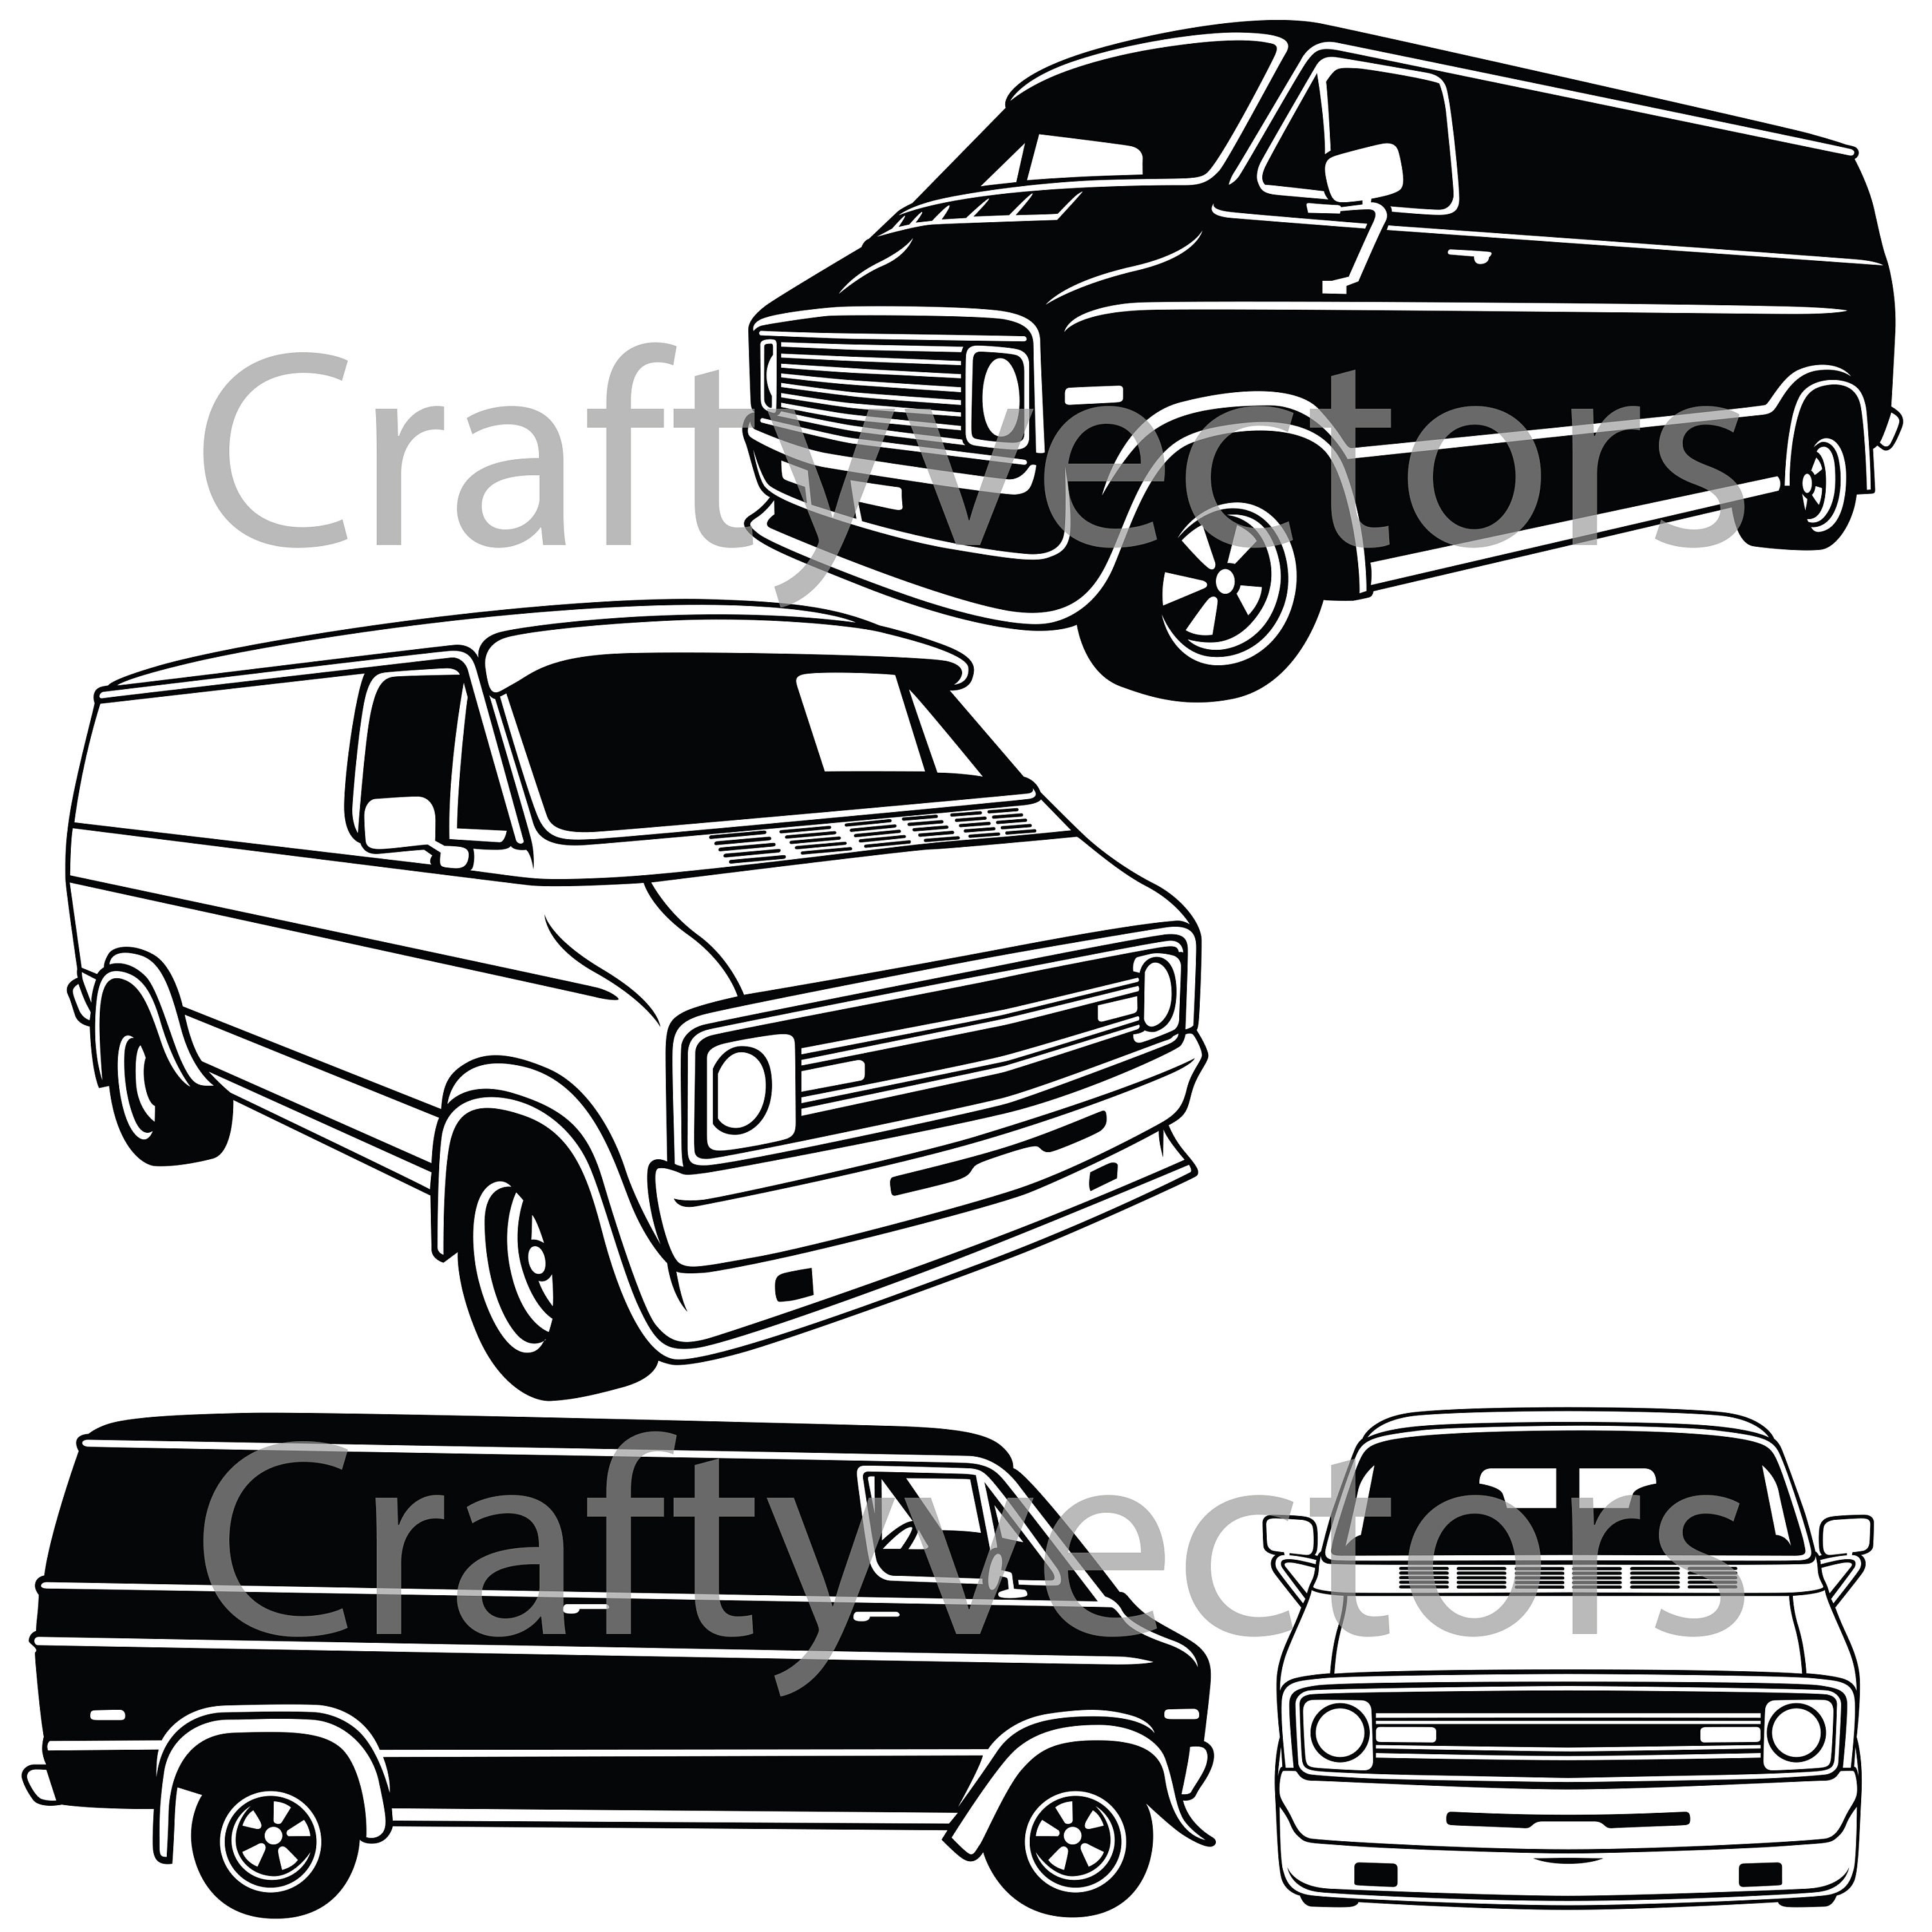 dodge tradesman van vector file etsy Mustang Coupe 50